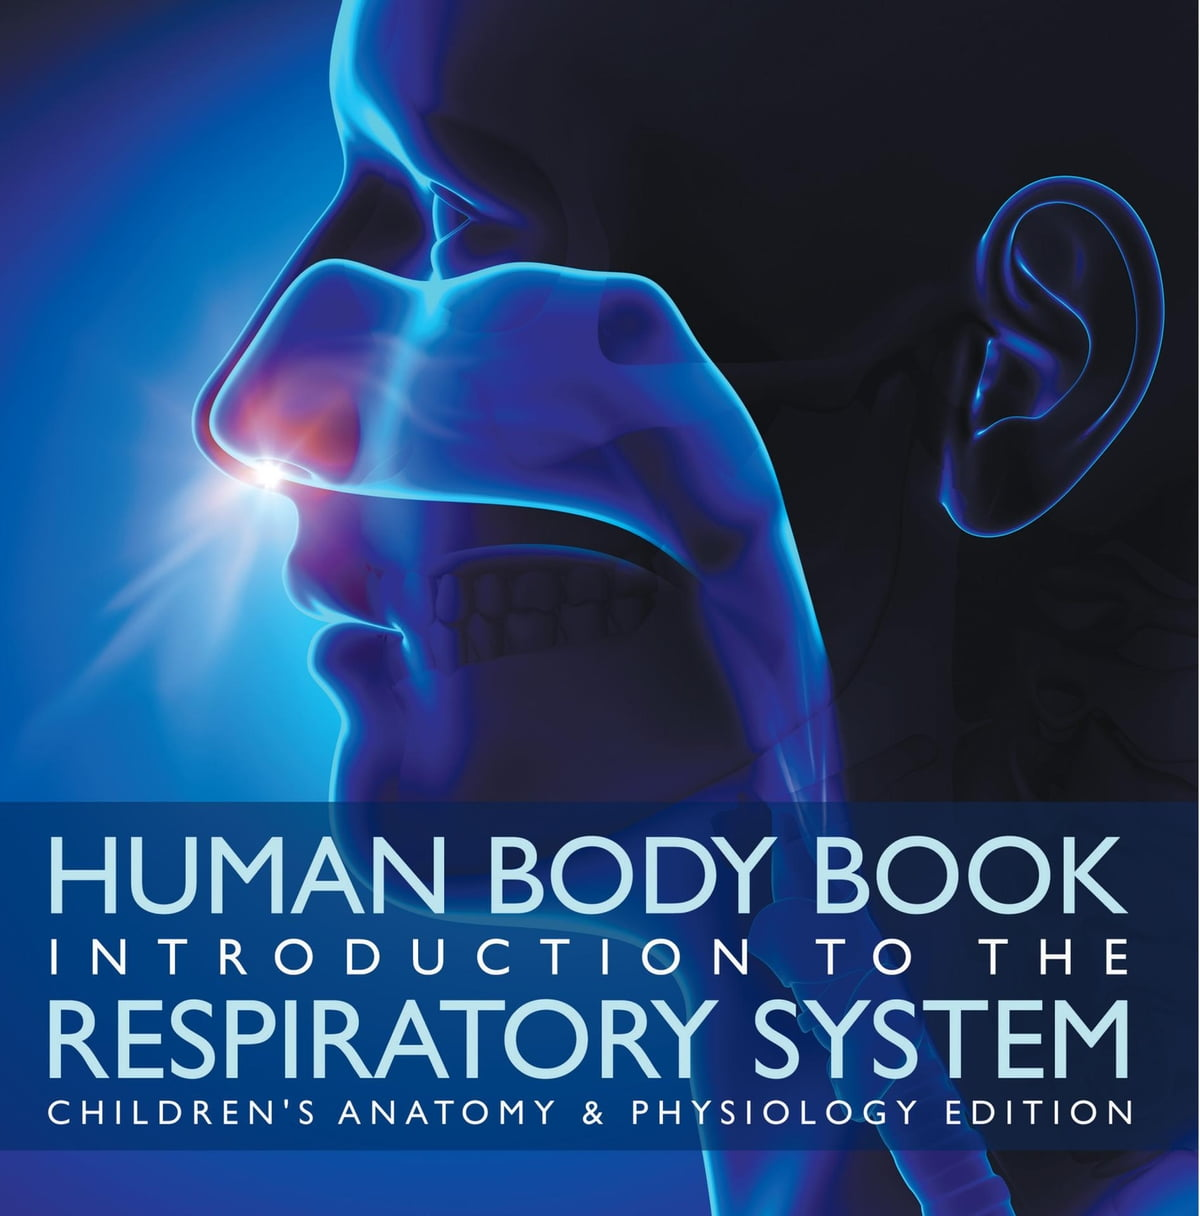 Human Body Book Introduction To The Respiratory System